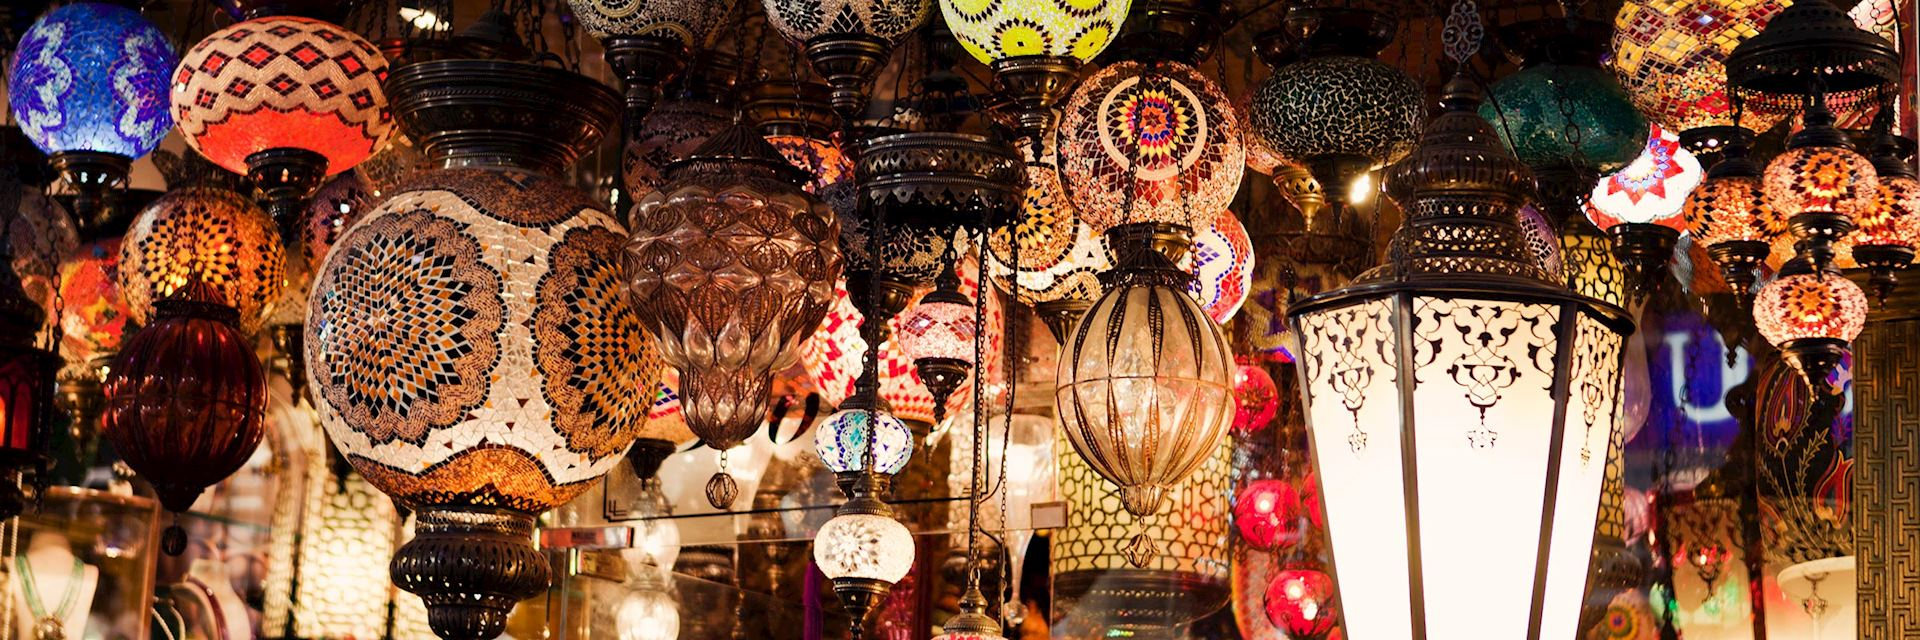 Turkish lamps for sale in the Grand Bazaar, Istanbul